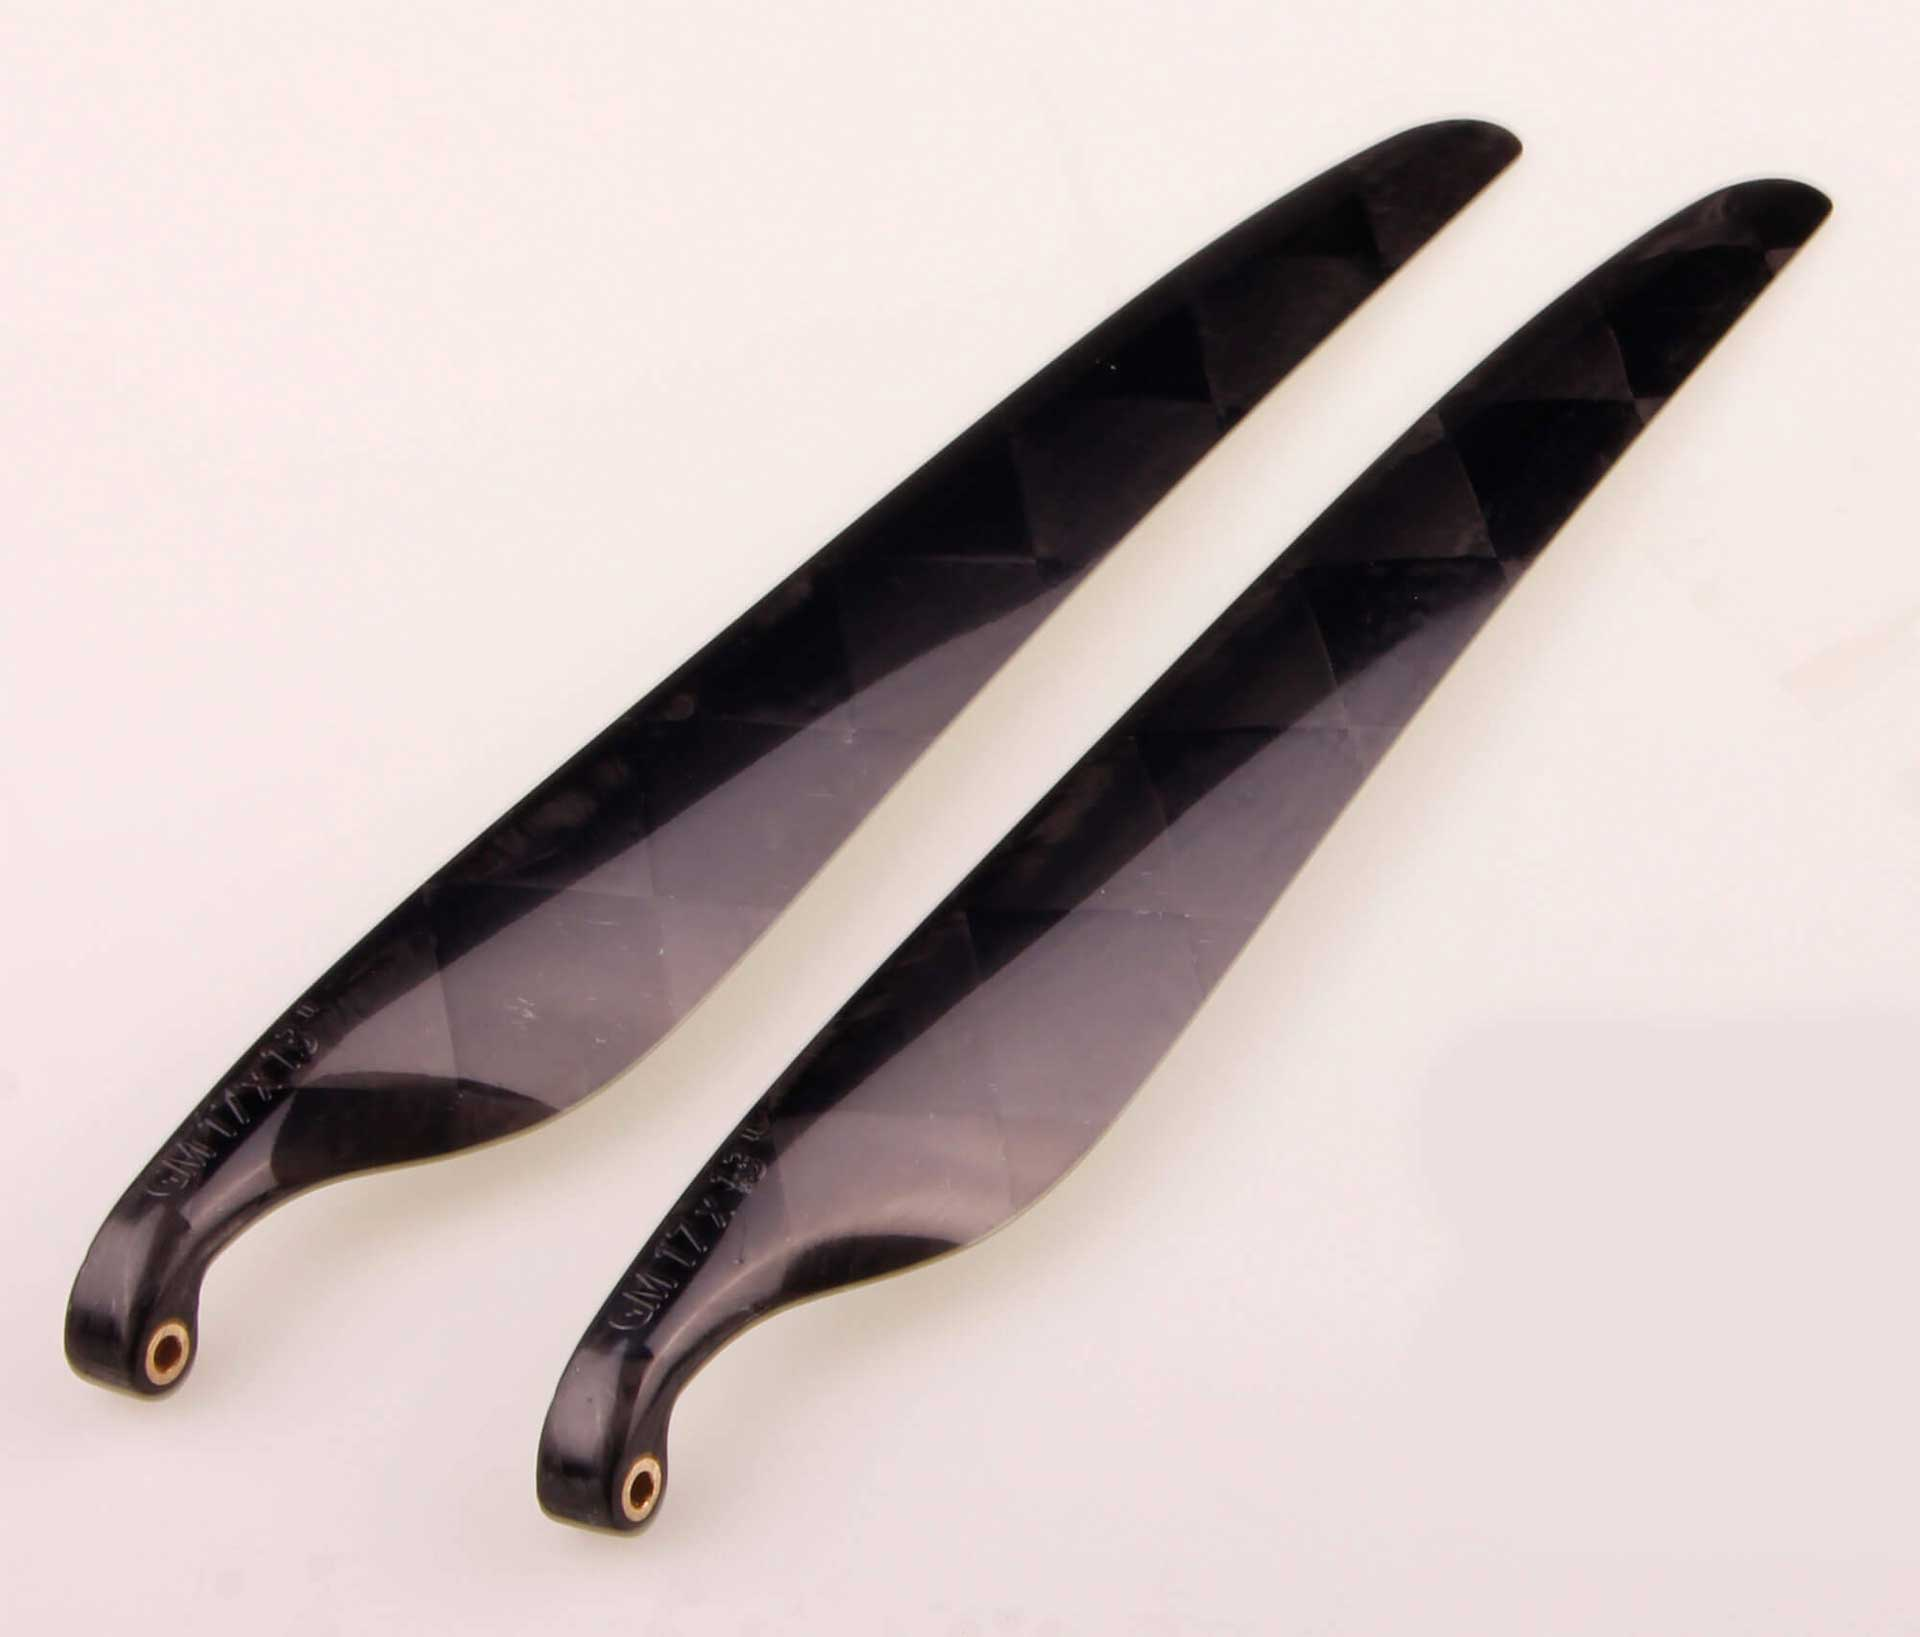 GM Propellers Folding propeller F5J 17x13 Carbon black 1 pair